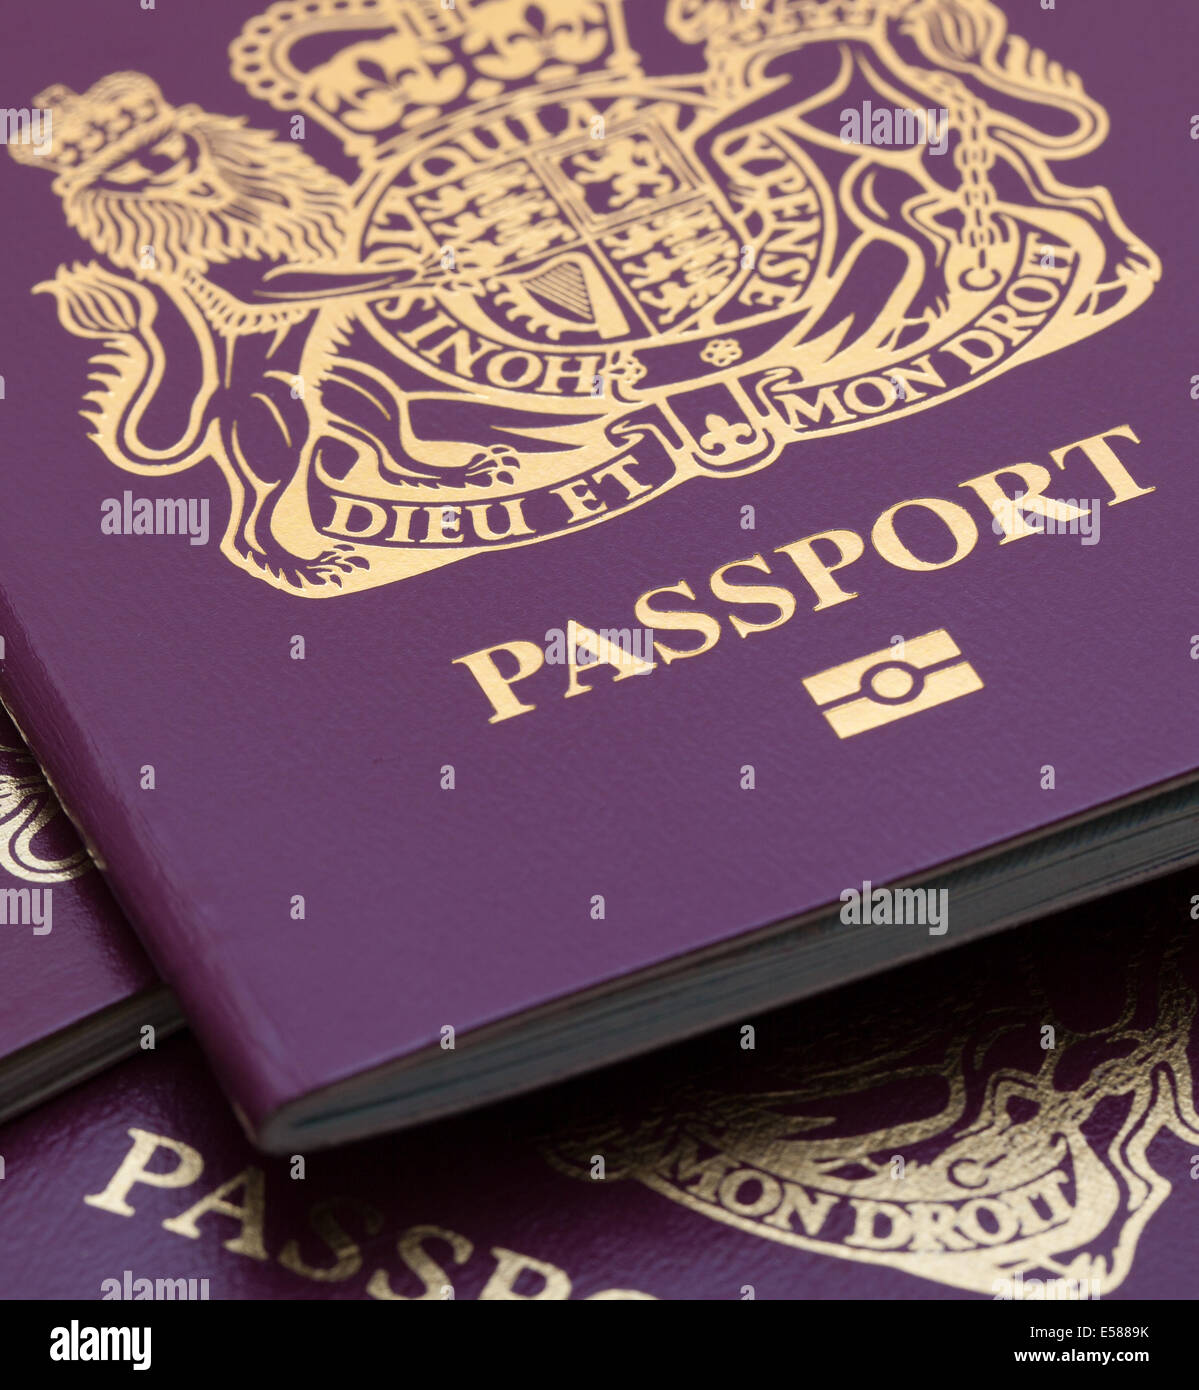 Immigration Uk Stock Photos & Immigration Uk Stock Images